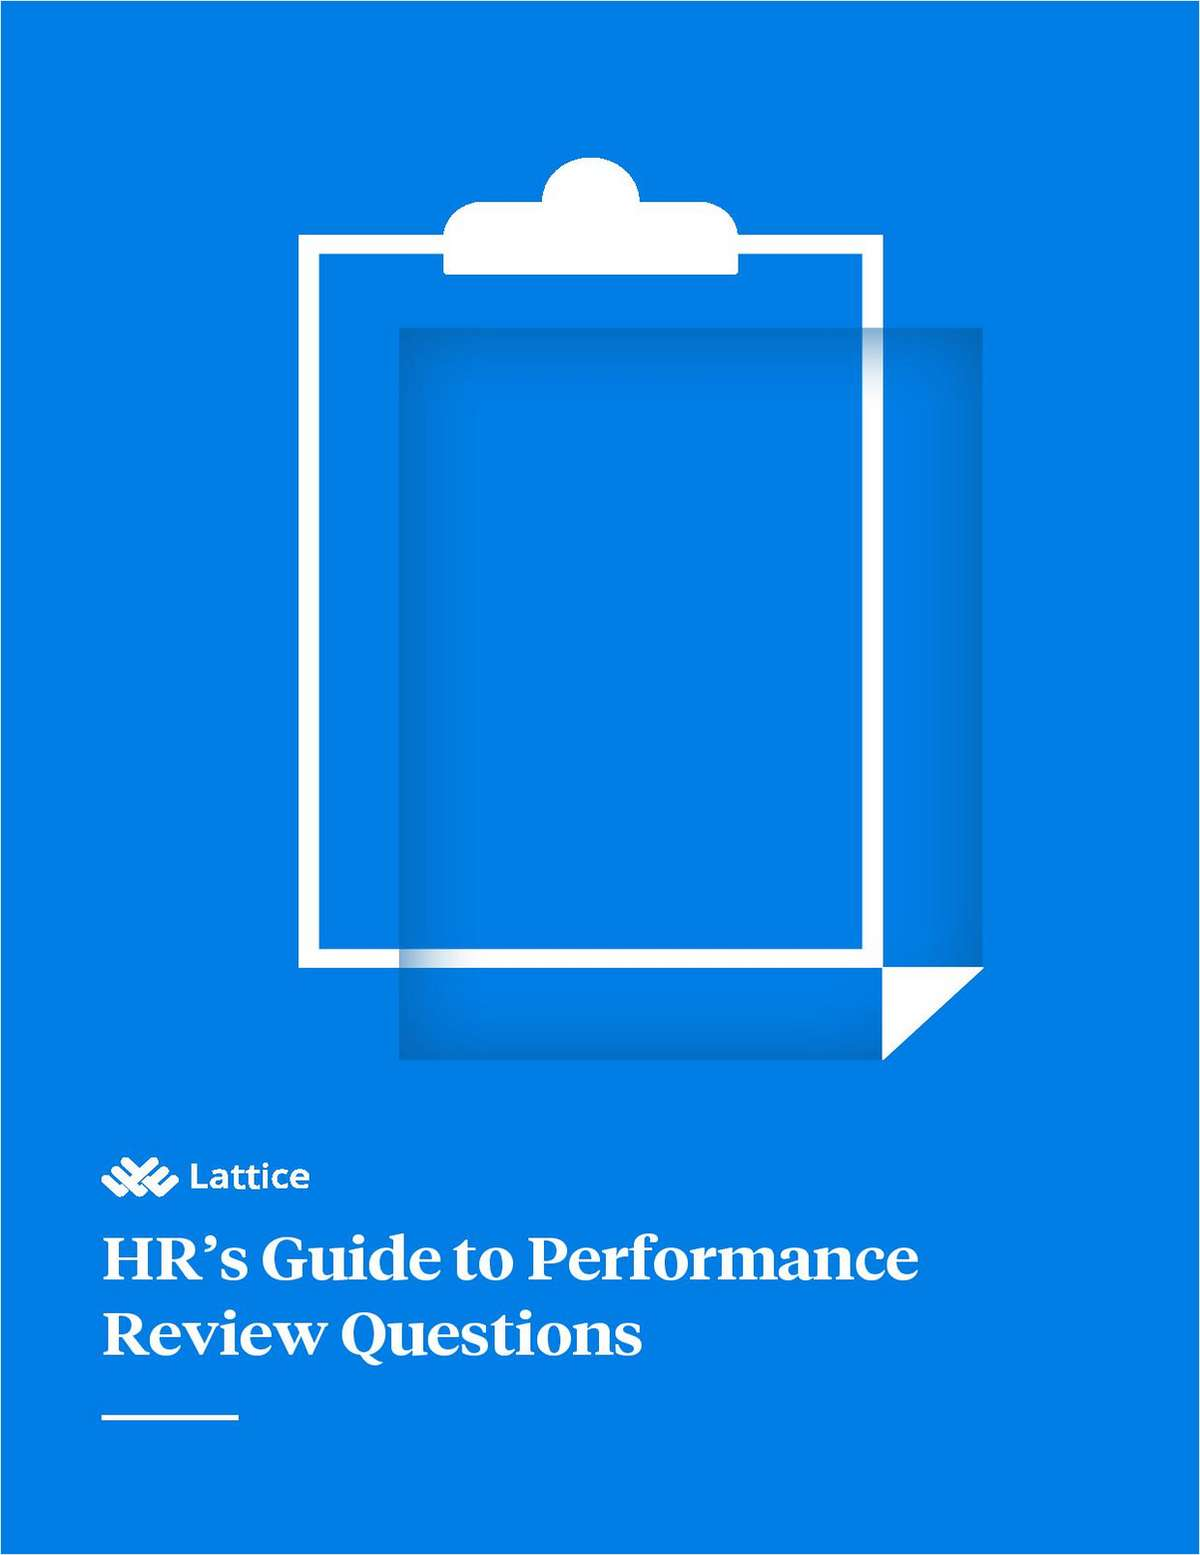 HR's Guide to Performance Review Questions